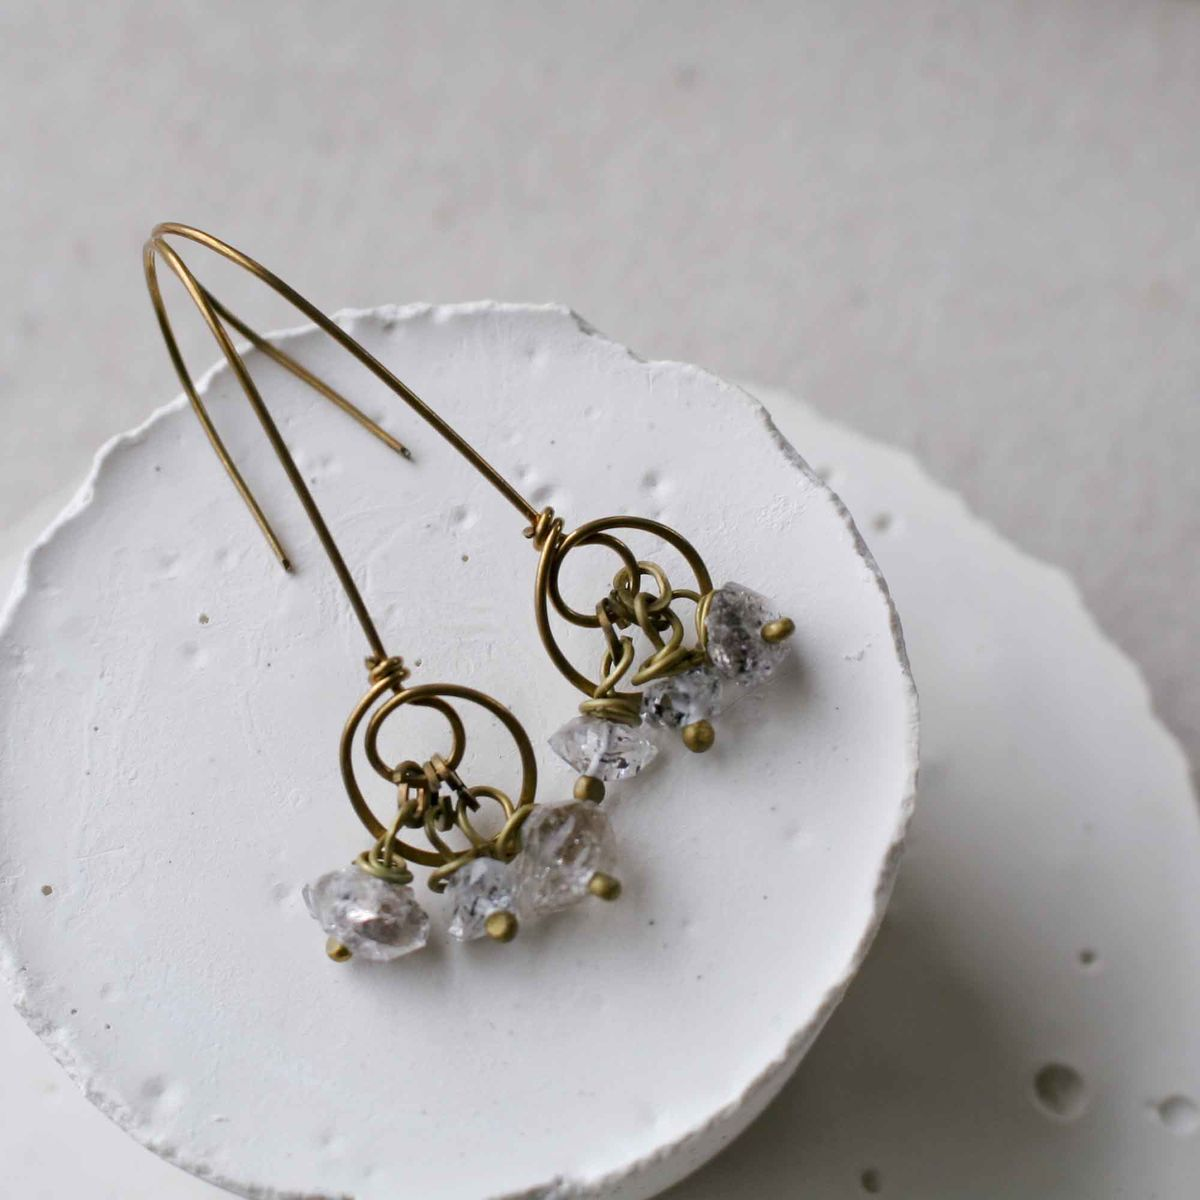 Nu Gold and Herkimer Double Swirl Earrings - product images  of